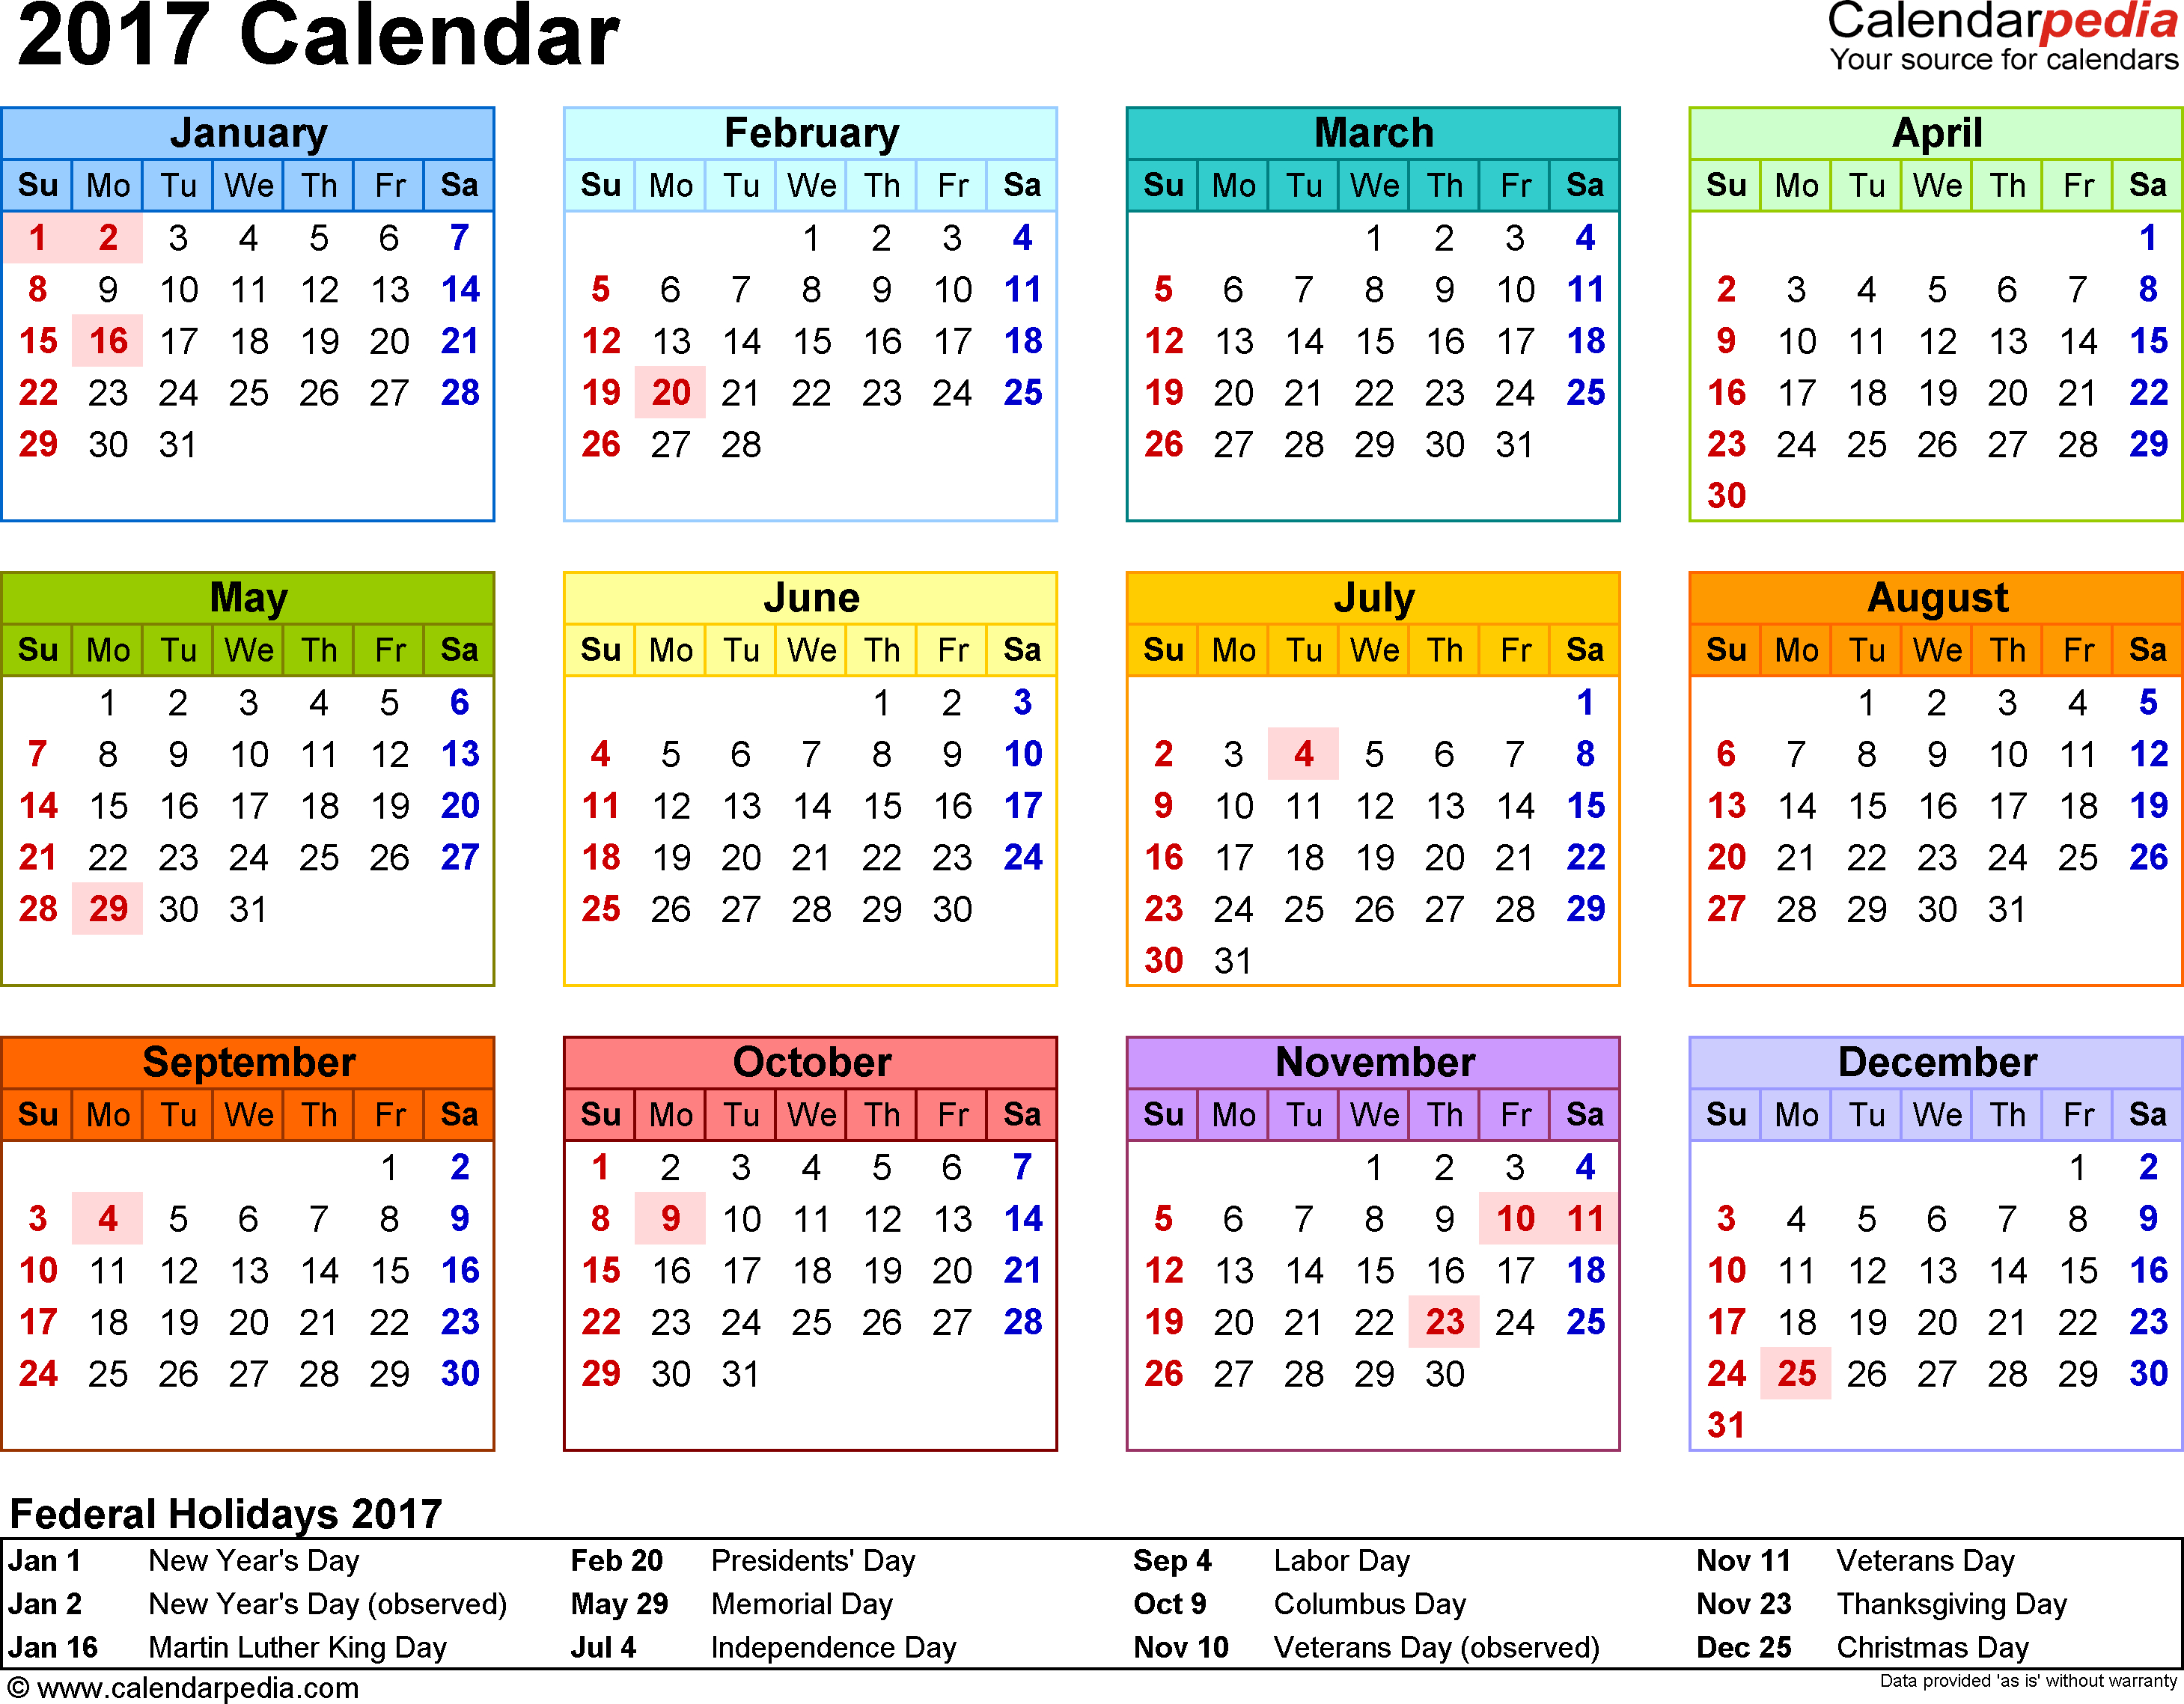 2017 Calendar  Download 17 Free Printable Excel Templates throughout 2017 School Calendar South Africa